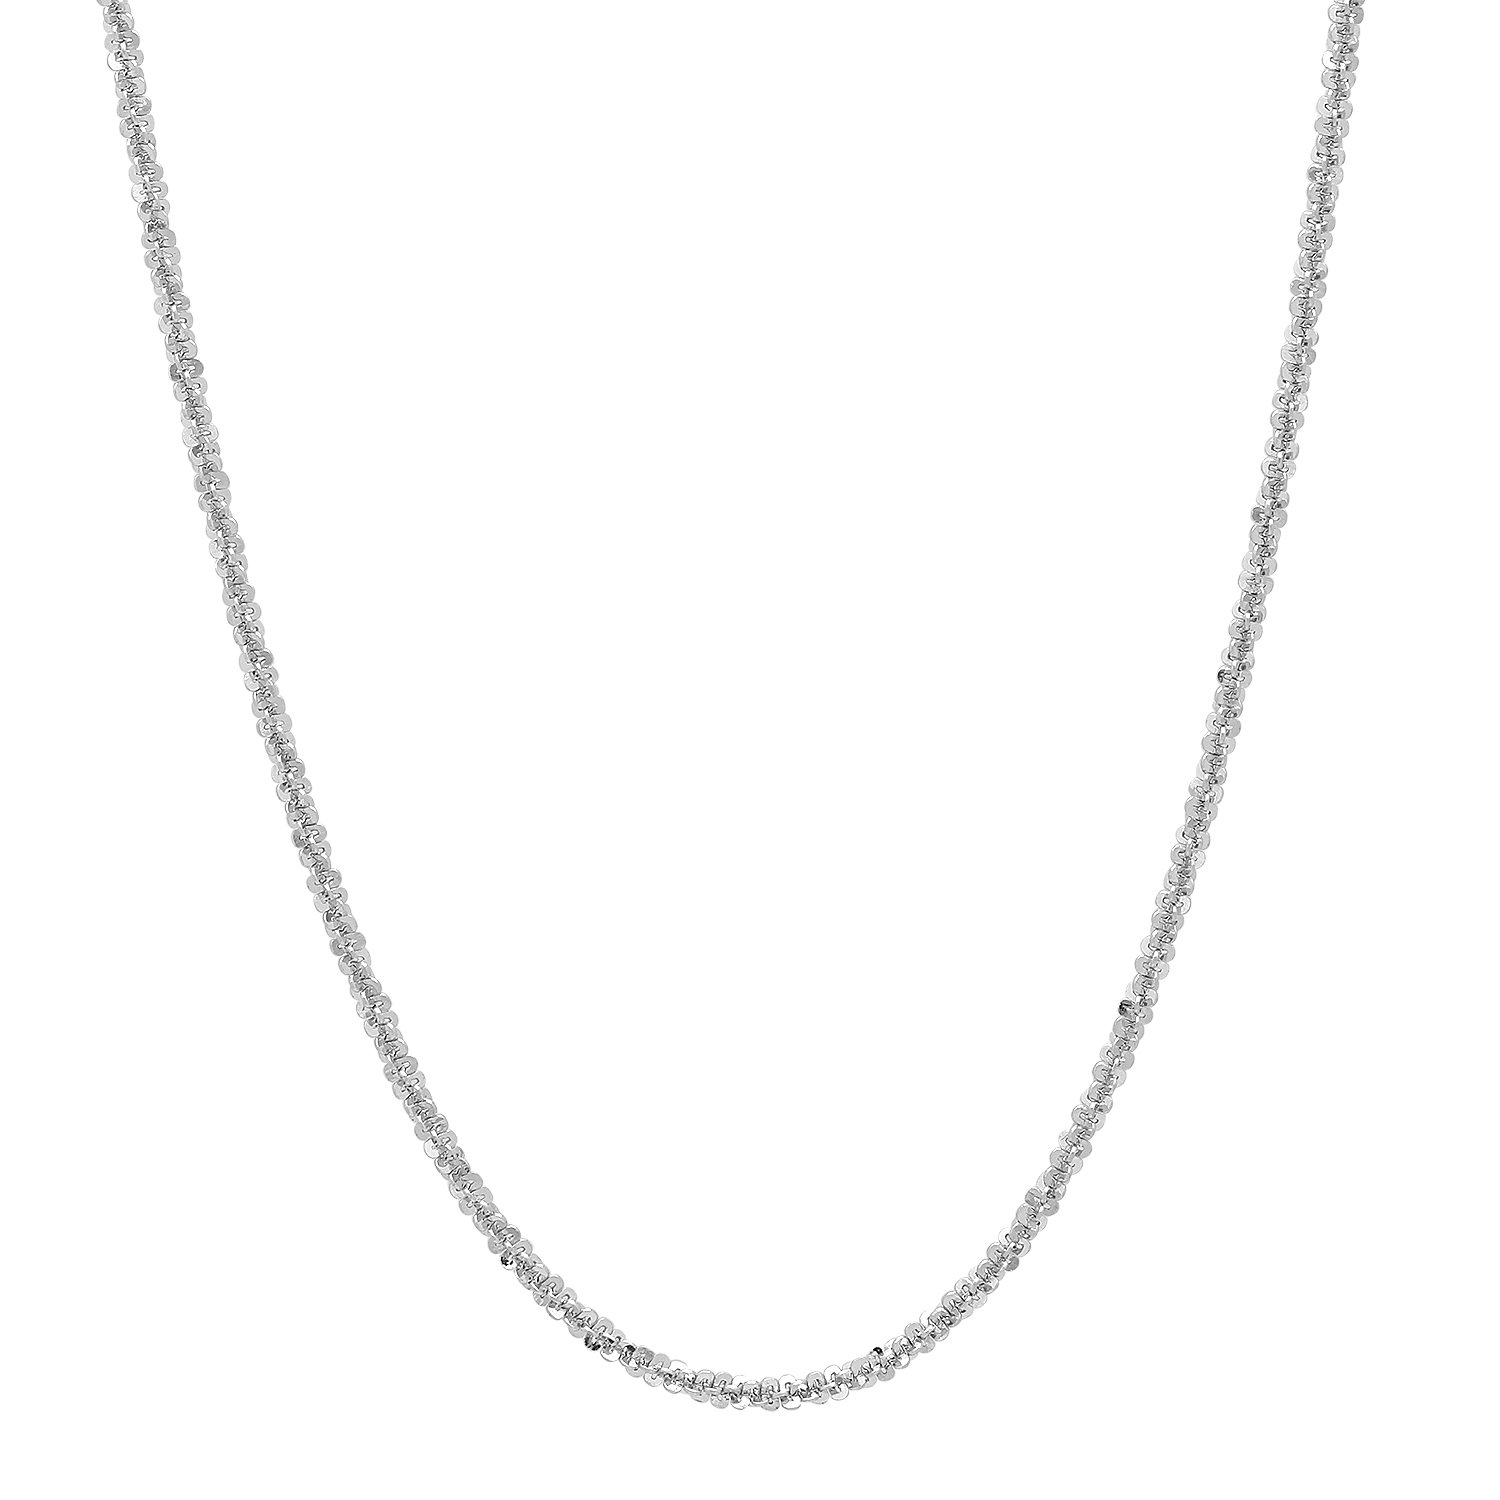 Jewelry Polishing Cloth 1.4mm Rhodium Plated .925 Sterling Silver Flattened Link Chain Necklace